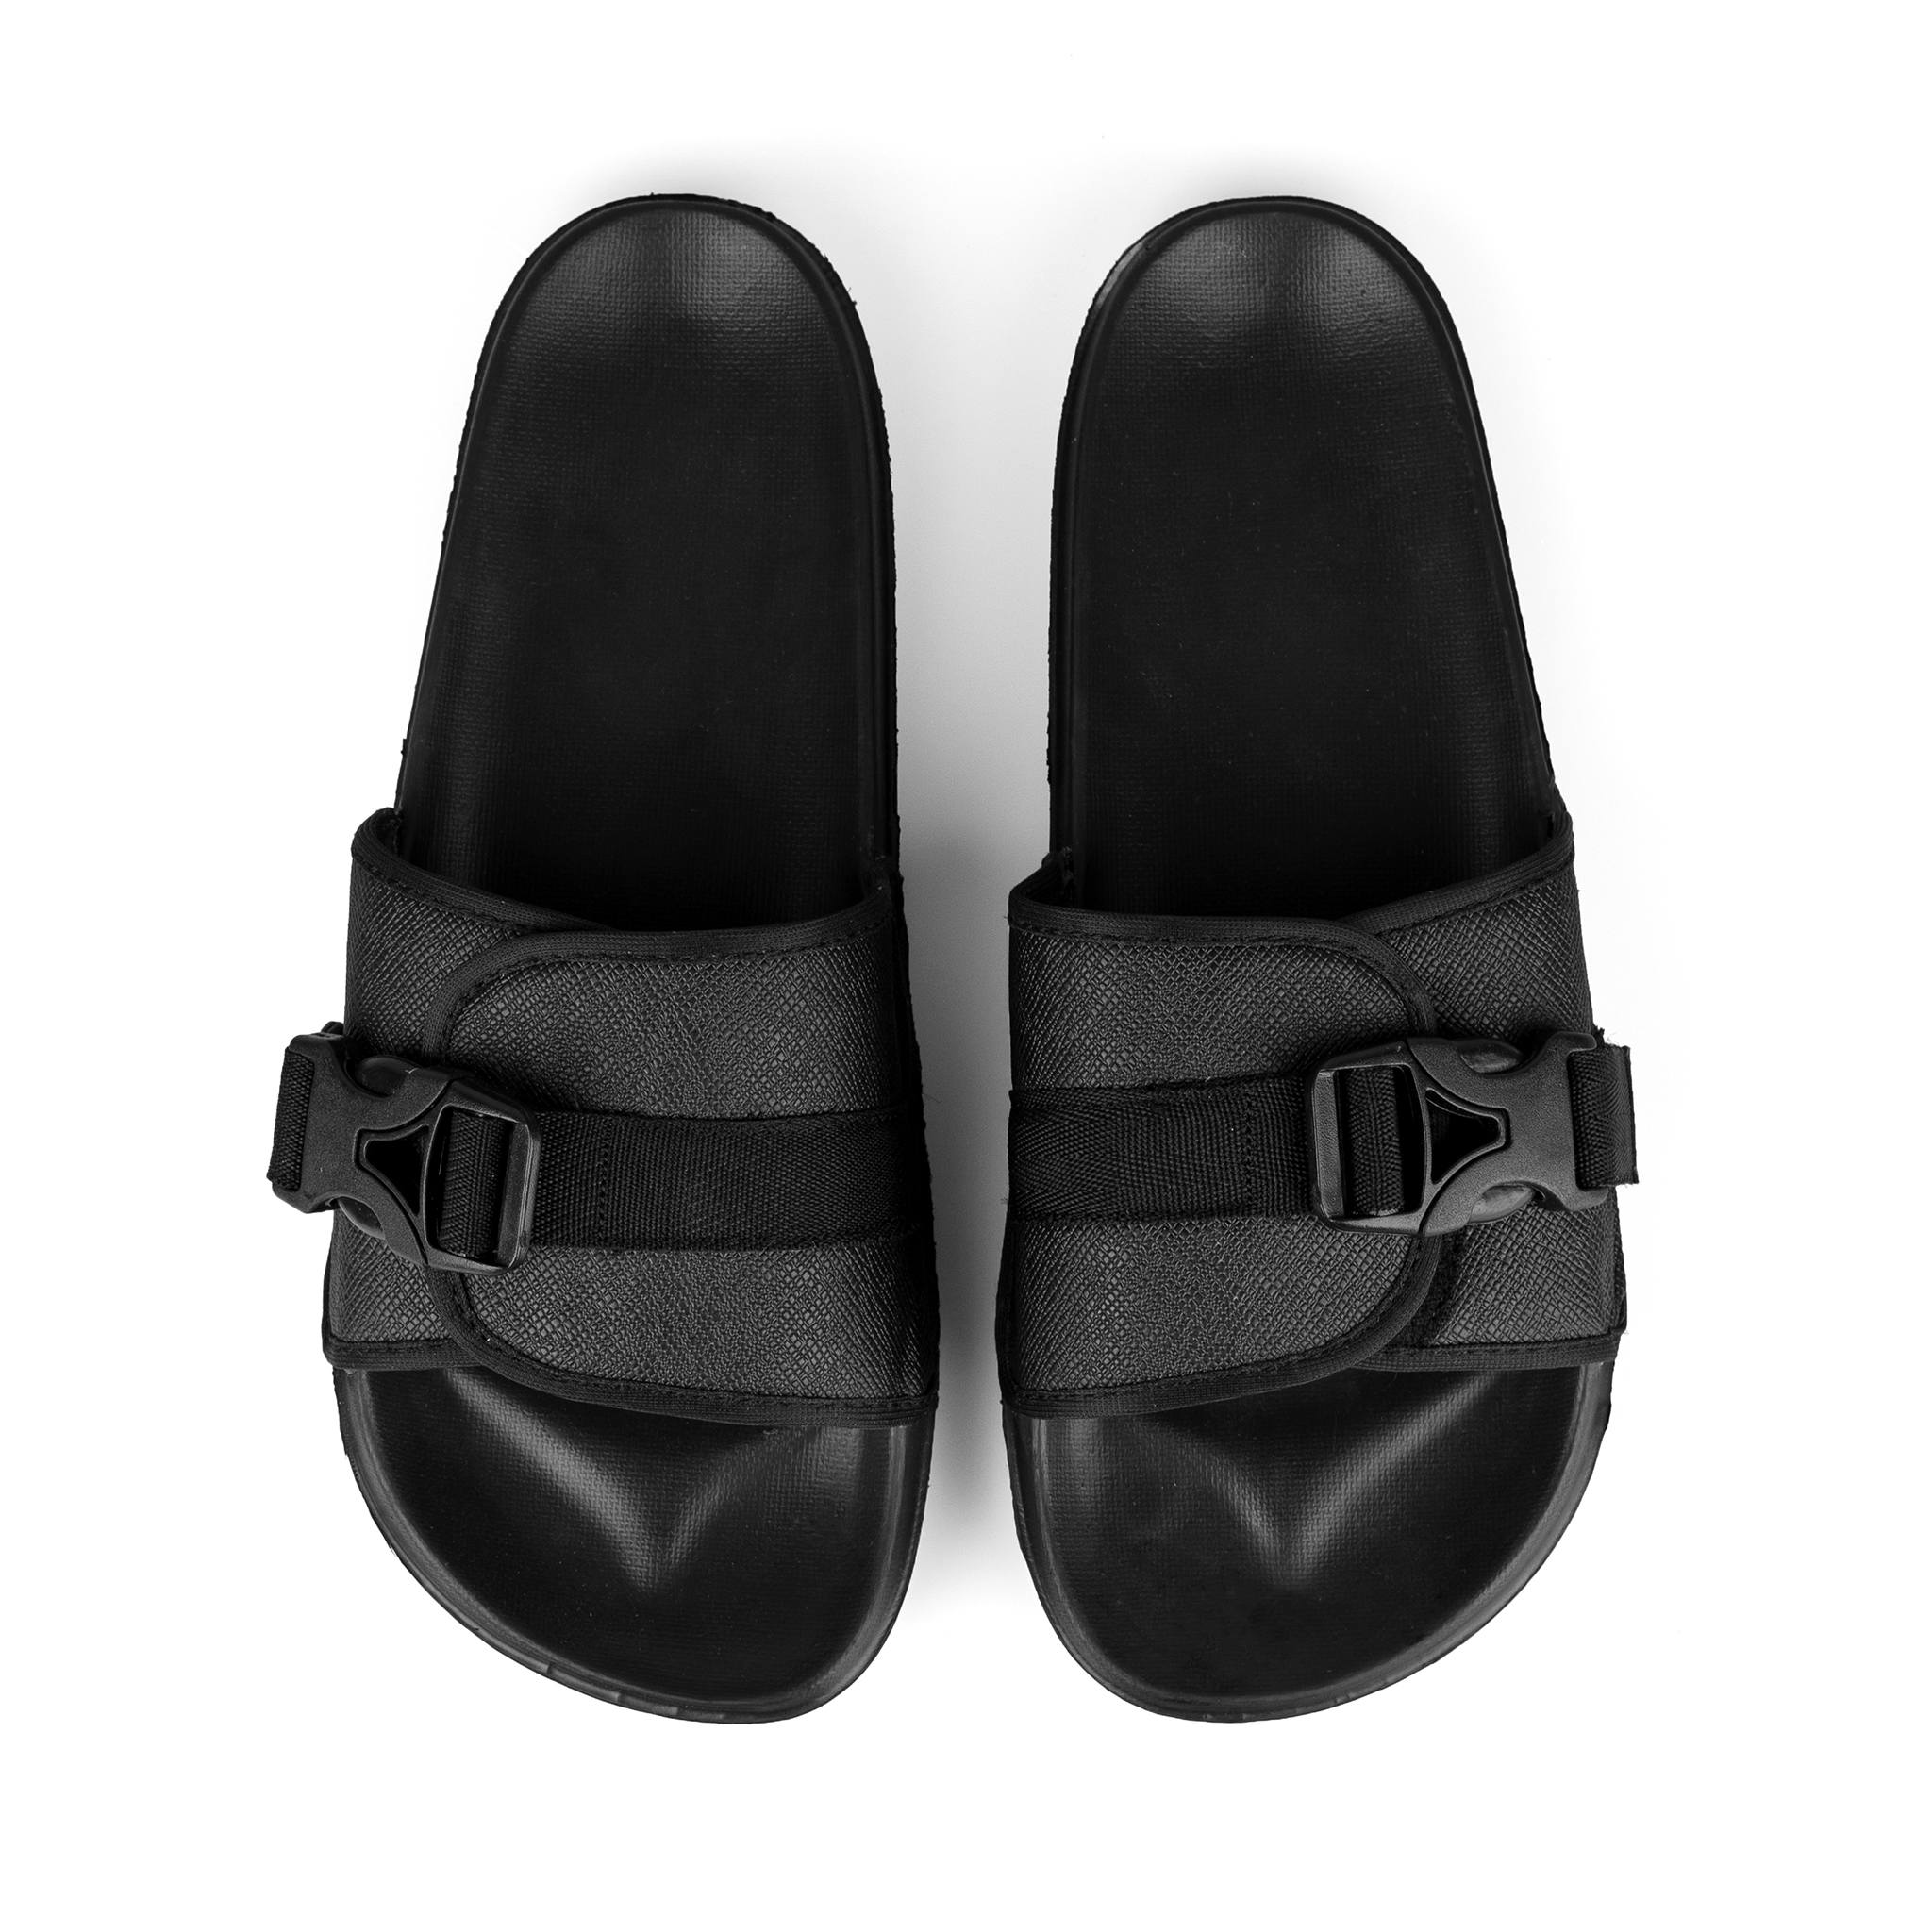 Slipper V2 Buckle All Black